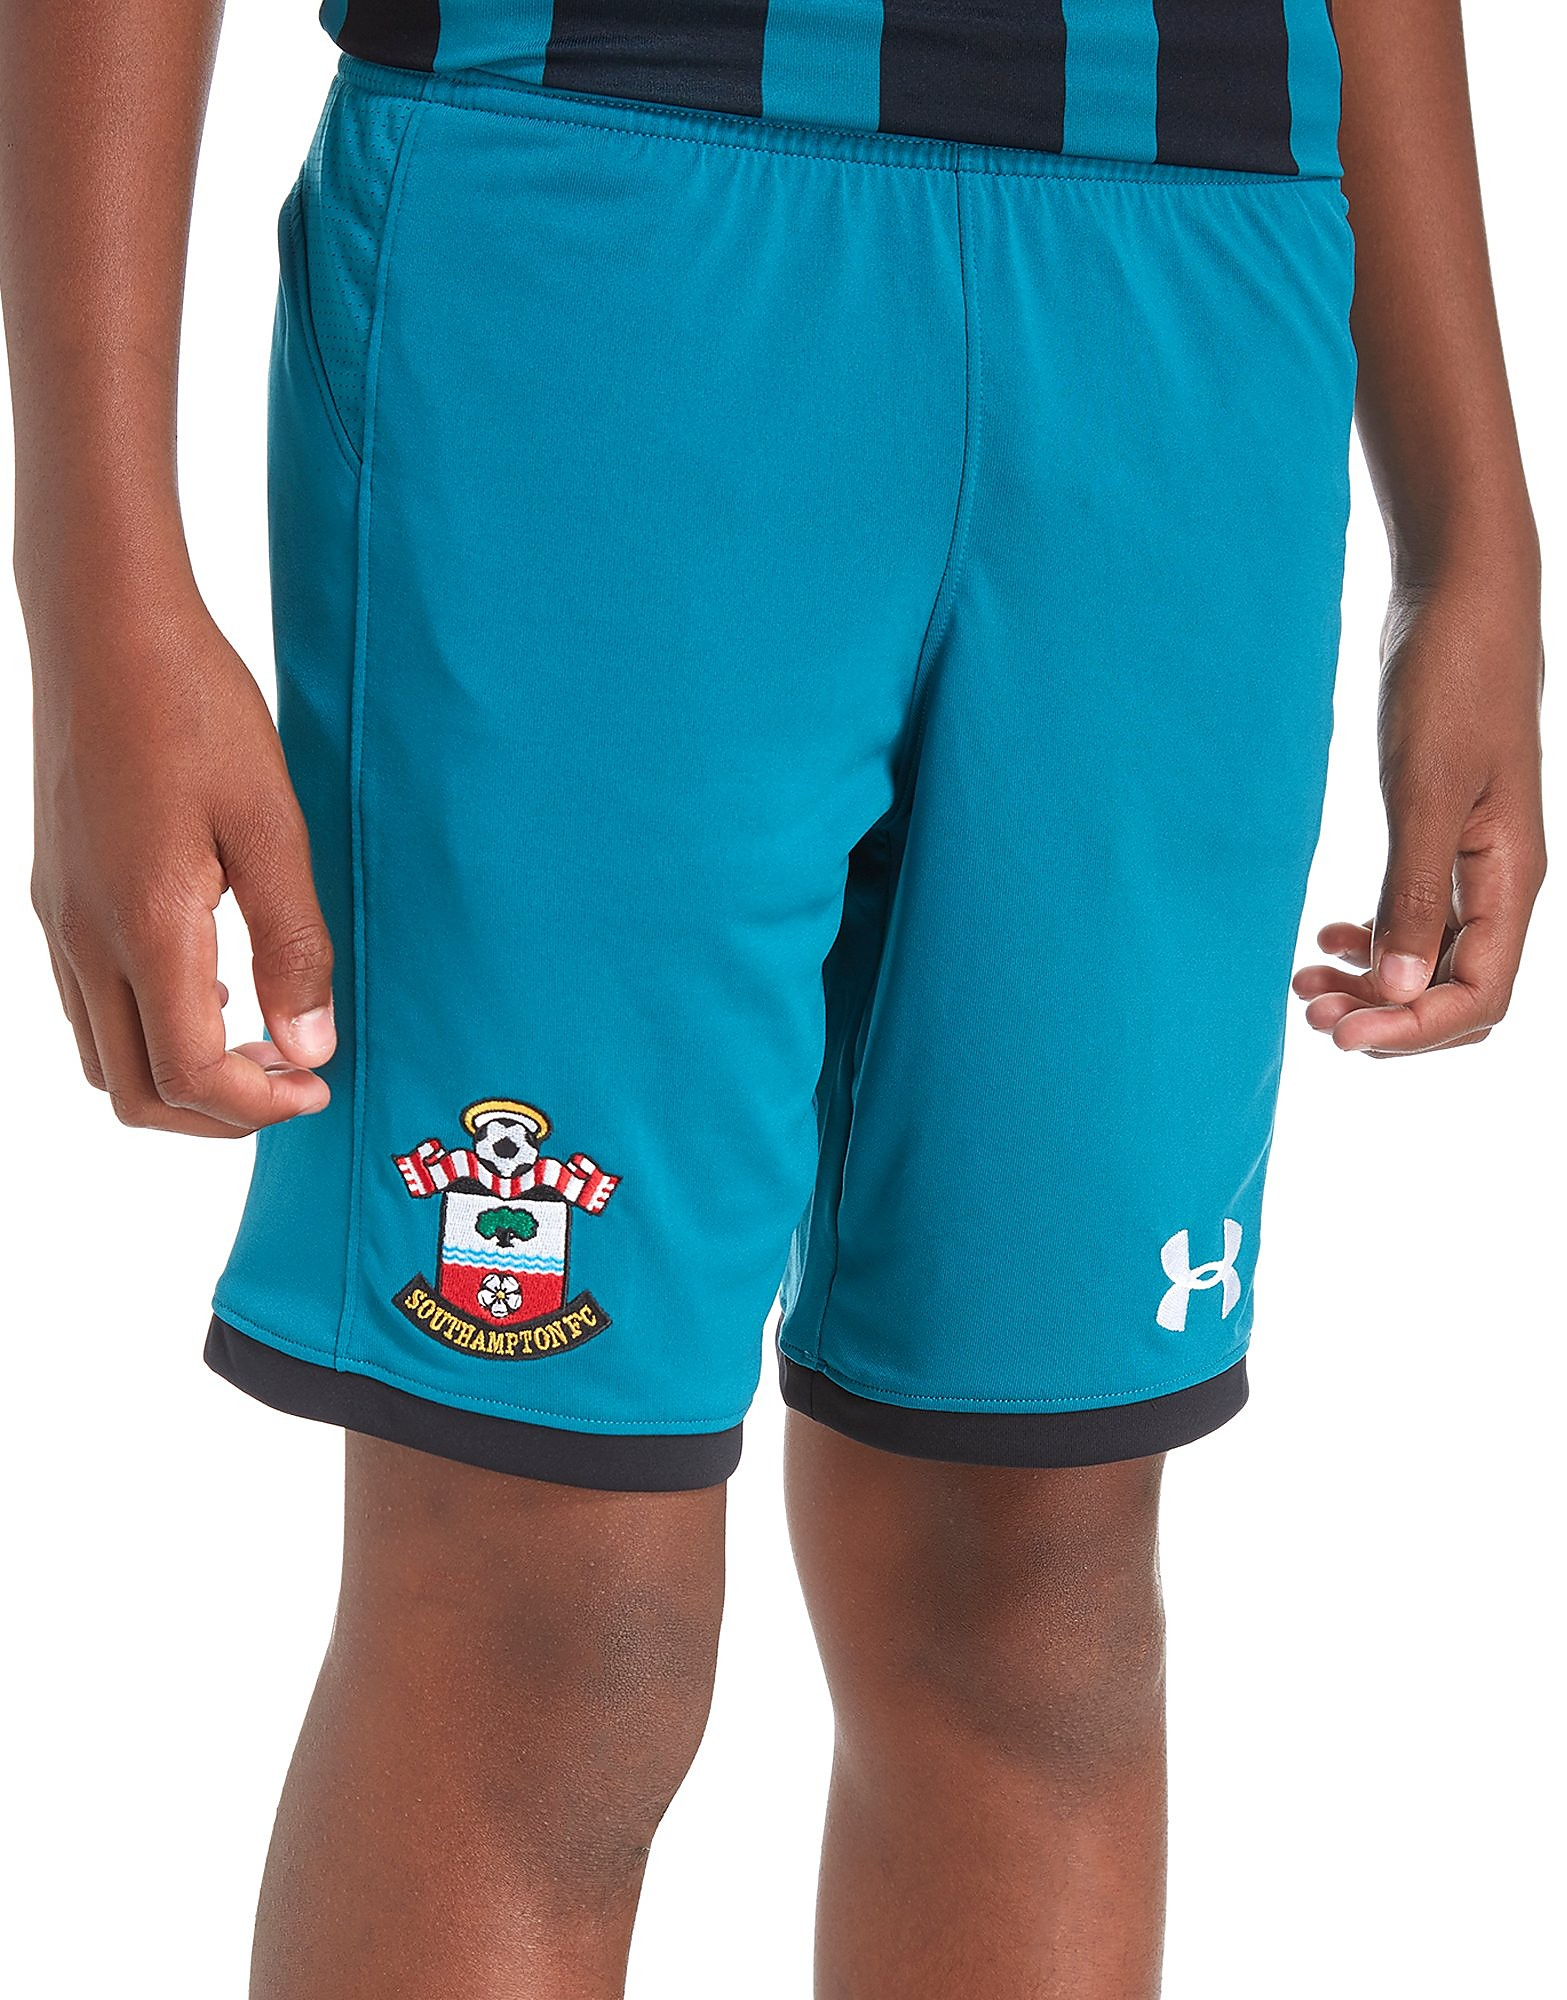 Under Armour Southampton FC 2017/18 Away Shorts Jnr PRE ORDER